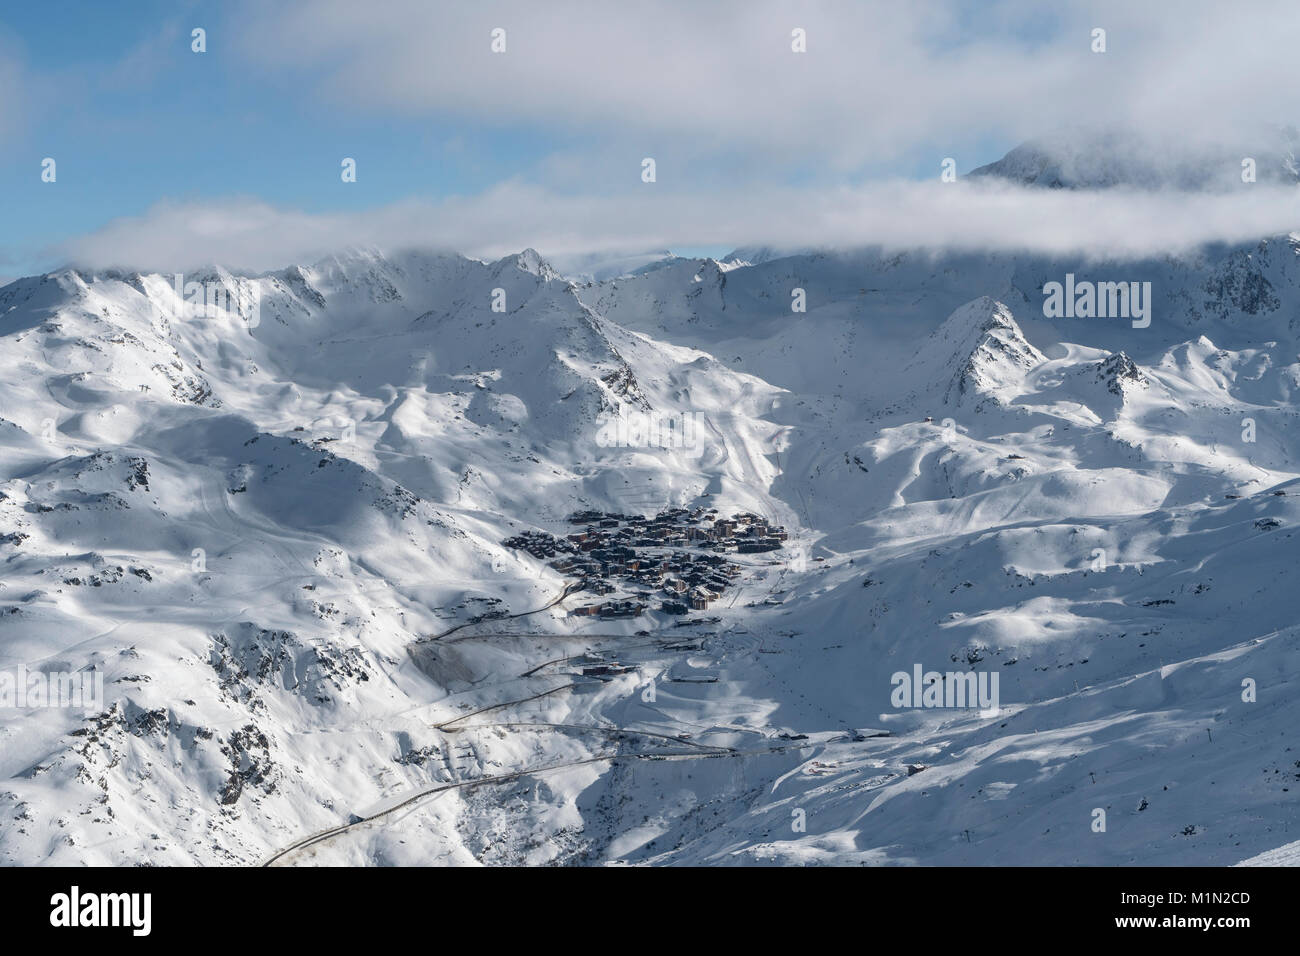 Distant view of the ski resort of Val Thorens in the Belleville Valley in the Three Valleys ski region of France - Stock Image